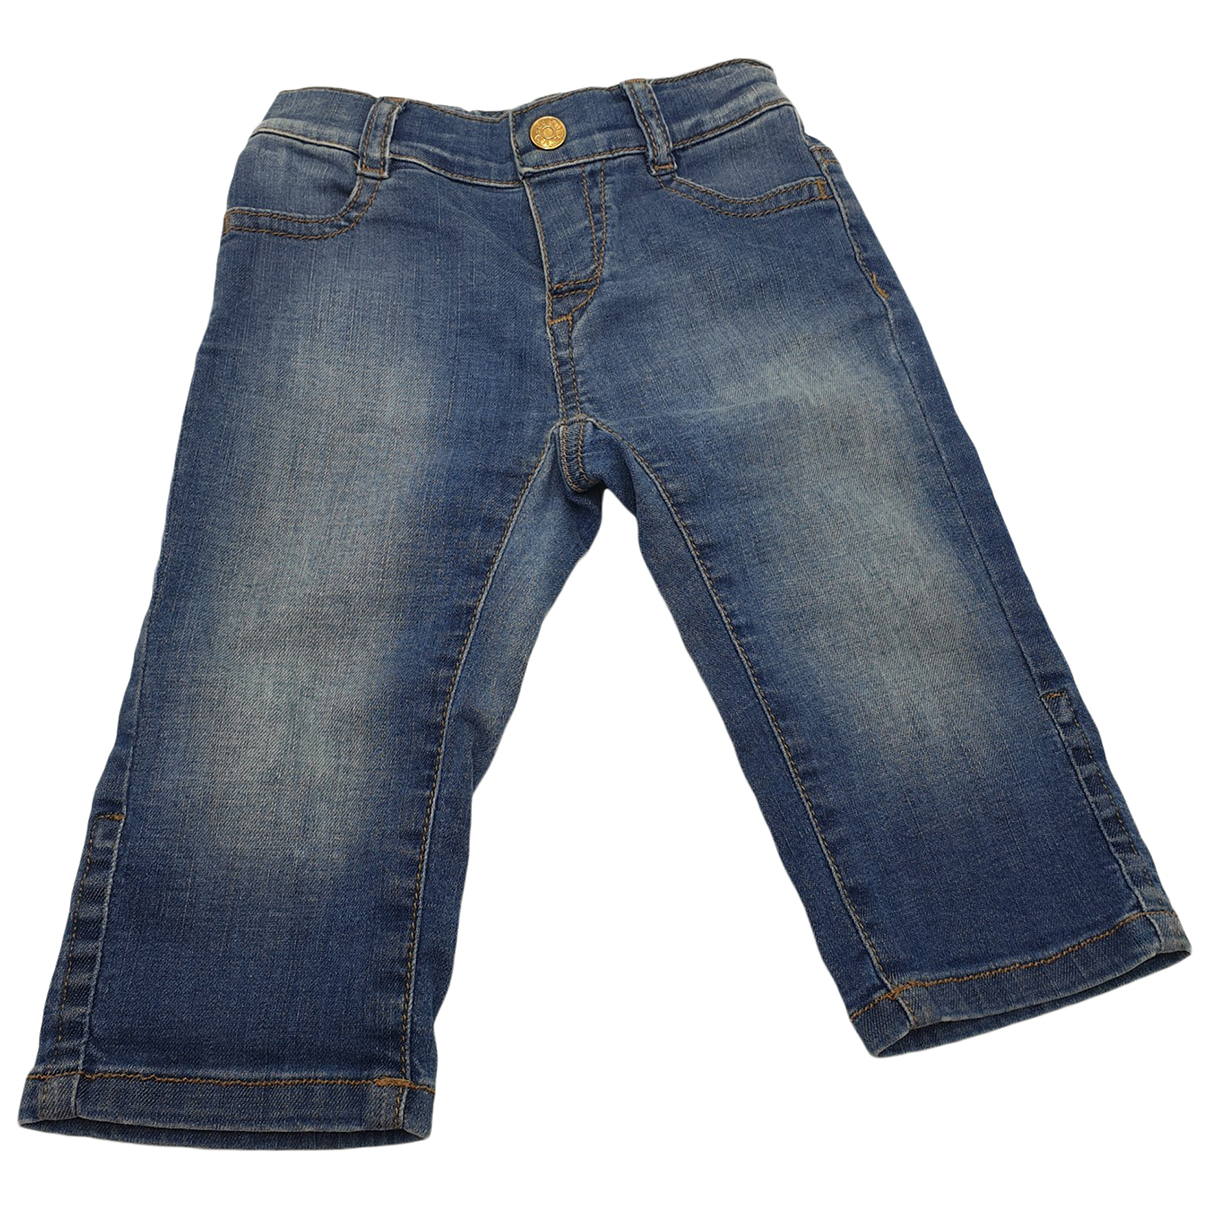 Gucci \N Blue Denim - Jeans Trousers for Kids 9 months - up to 71cm FR